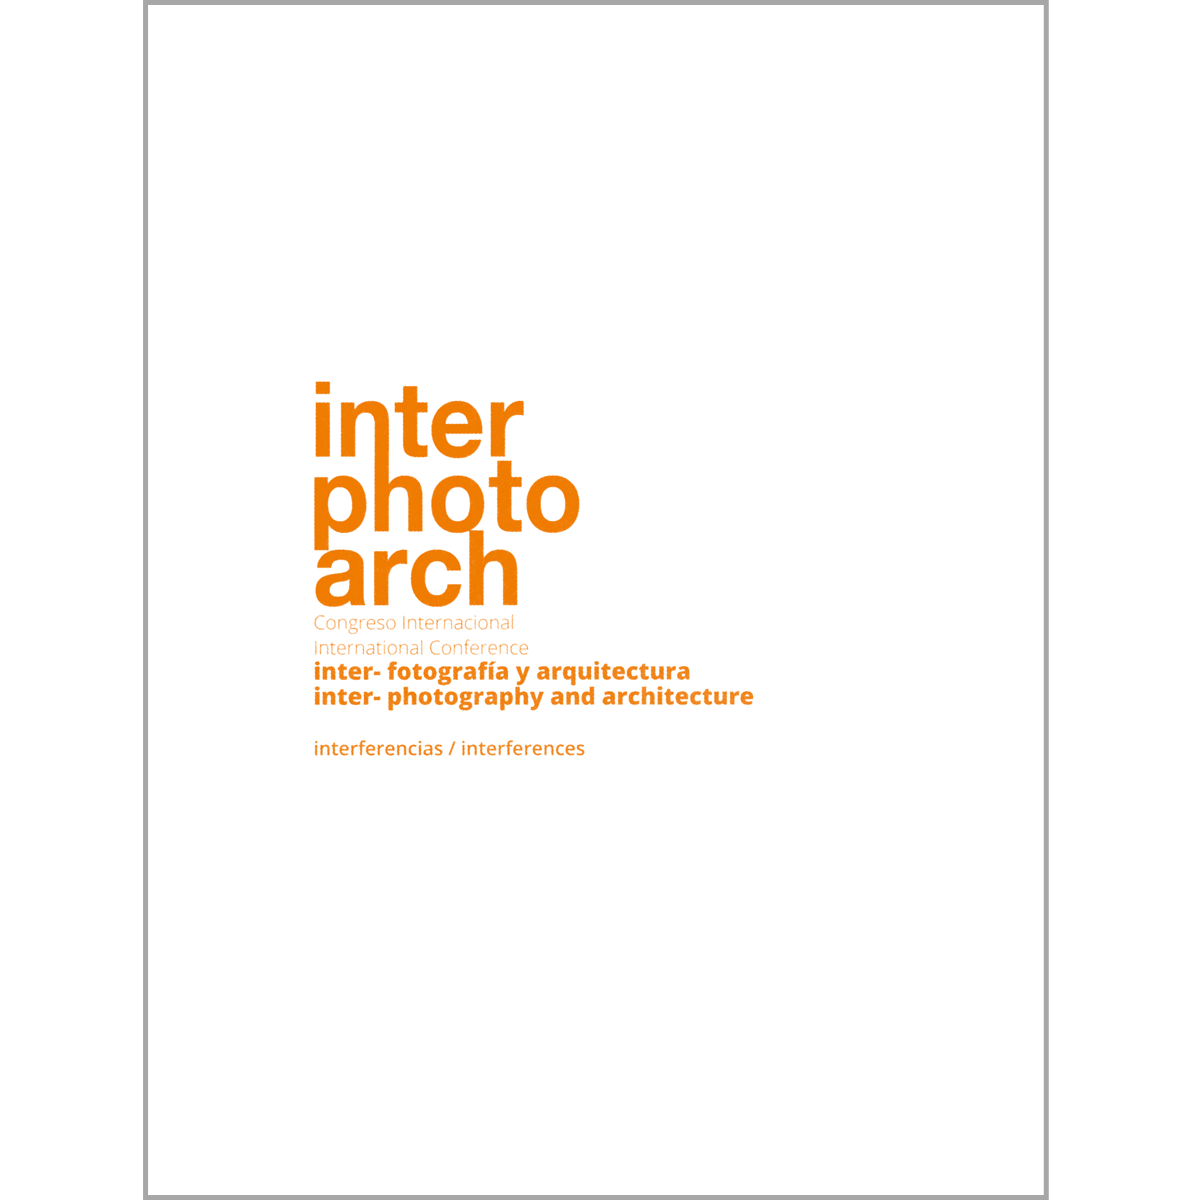 Interphotoarch